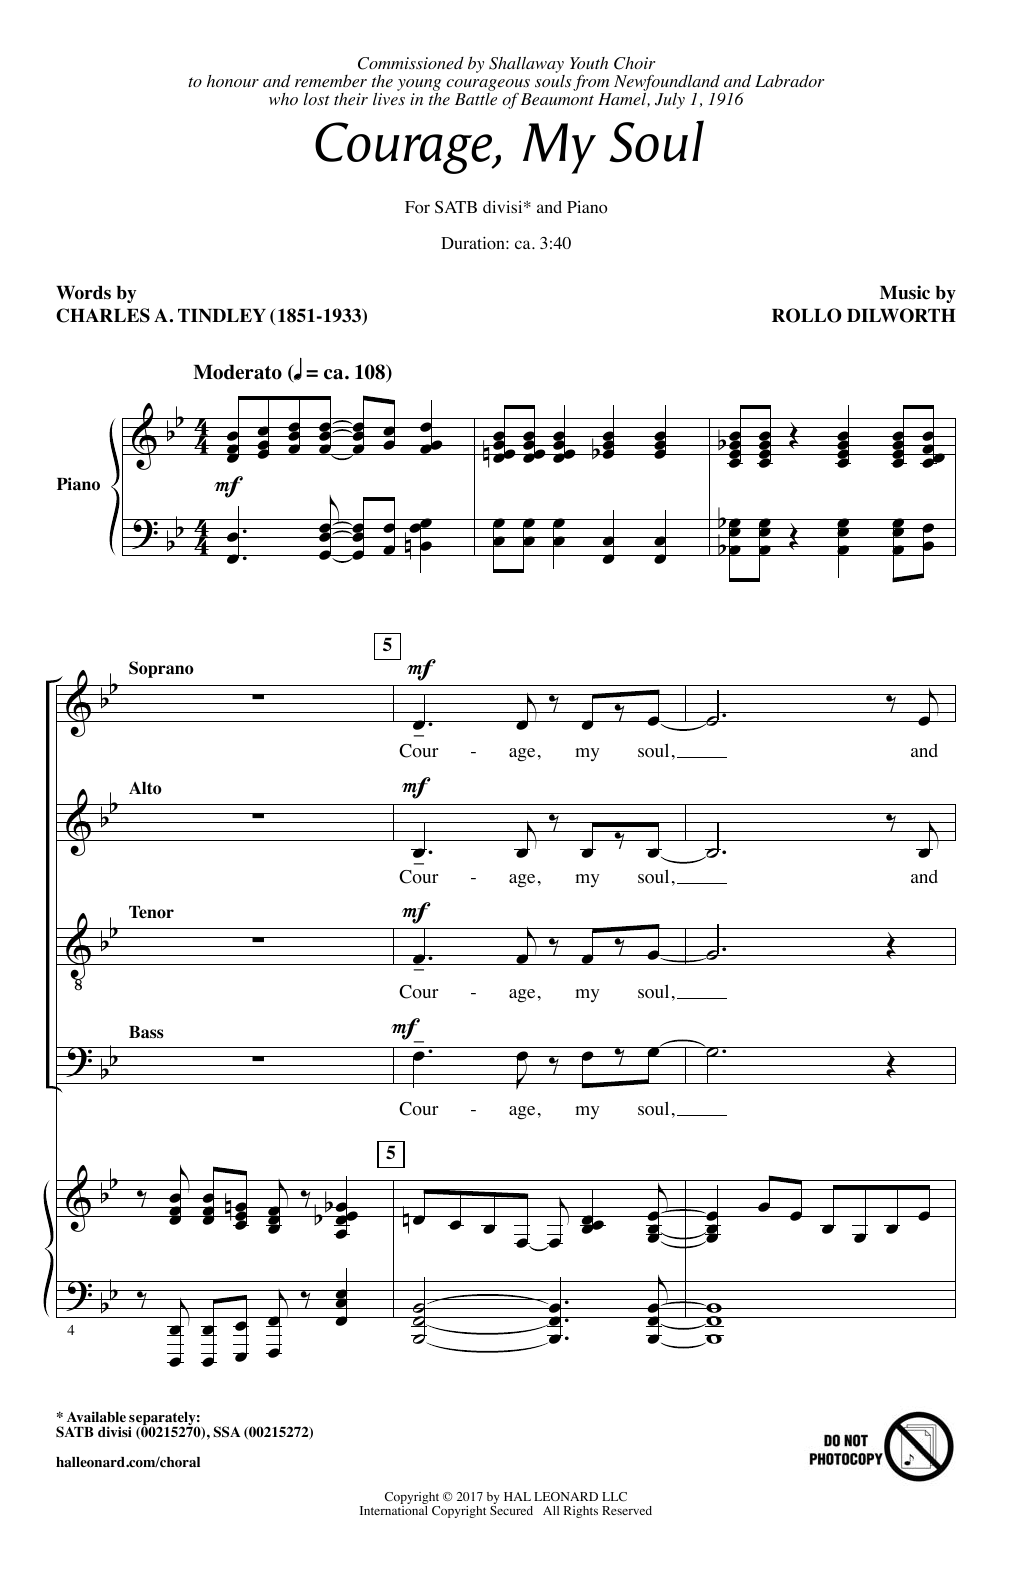 Courage, My Soul Sheet Music